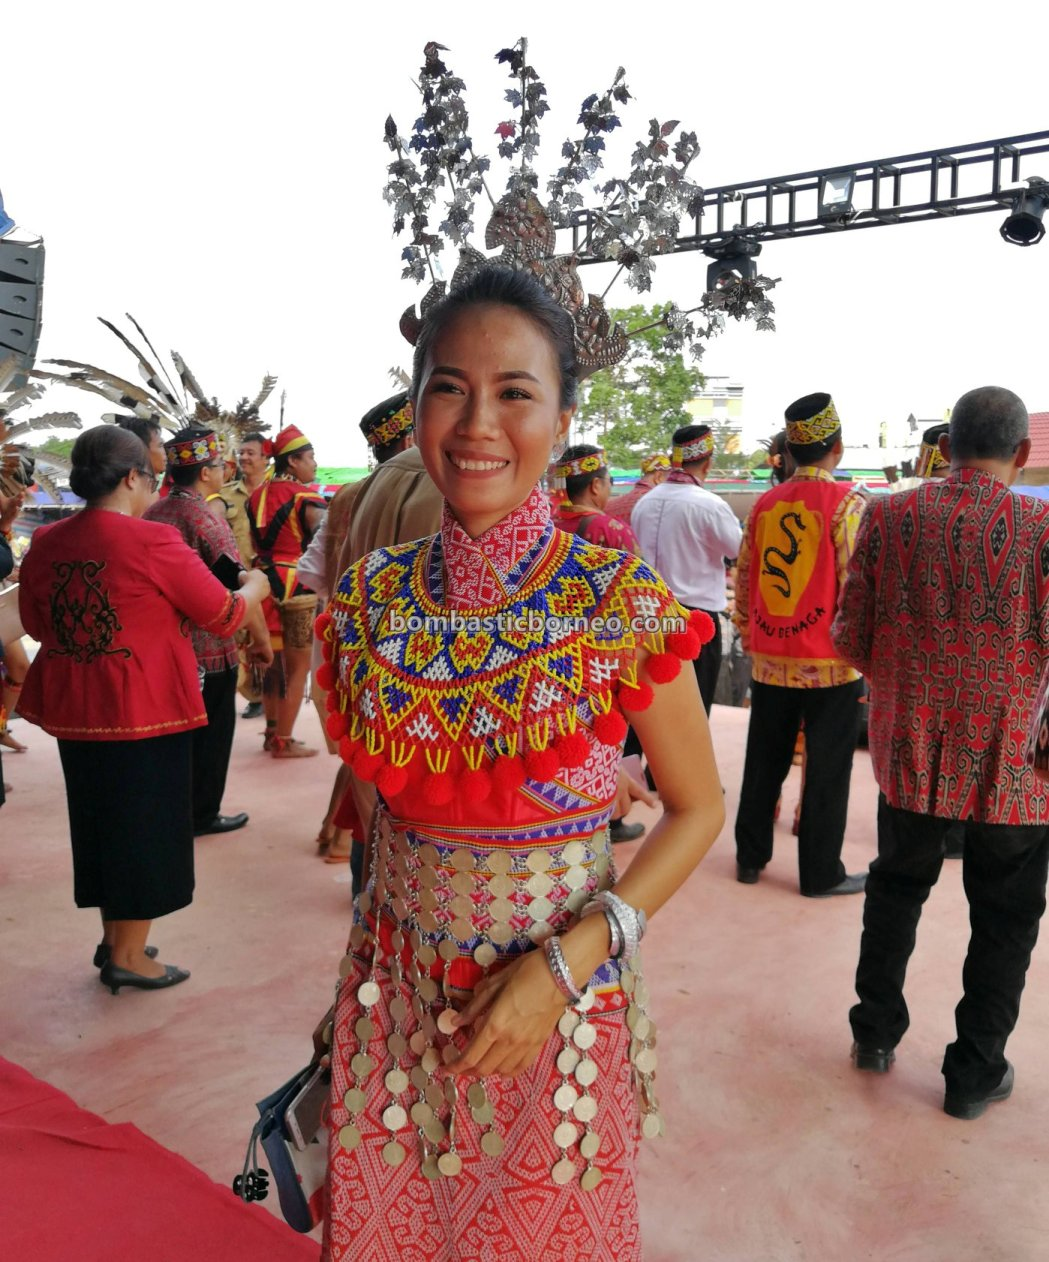 paddy harvest festival, indigenous, traditional, culture, event, native,, ethnic, tribe, West Kalimantan, Obyek wisata, thanksgiving, Tourism, Trans Border, 印尼西加里曼丹, 婆罗洲传统丰收节